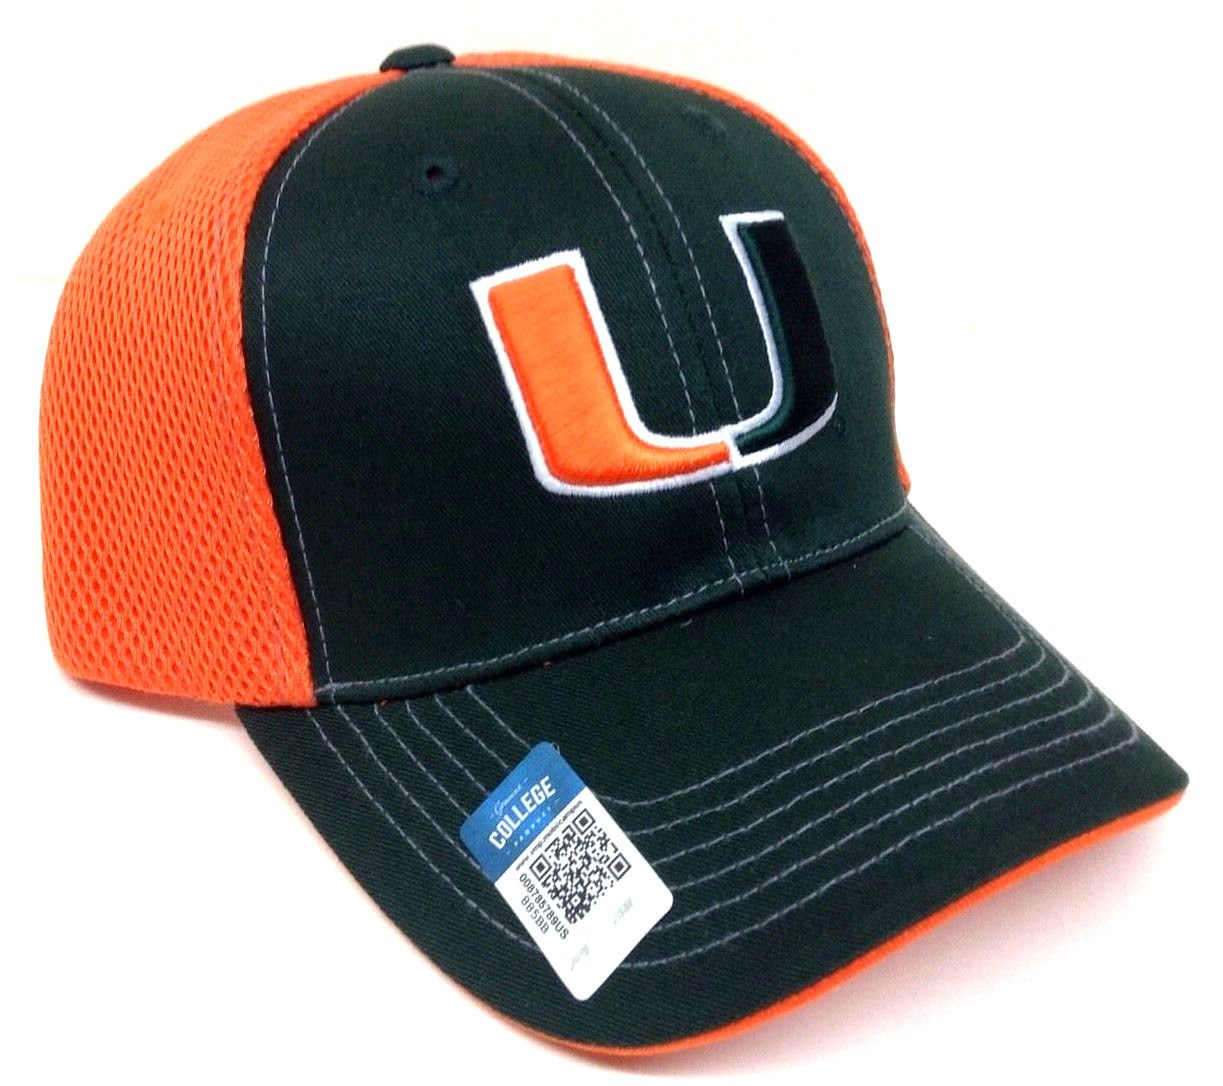 Amazon.com   Blitz Mesh UM Miami Hurricanes Snapback Hat   Sports   Outdoors 5a6c63cb322